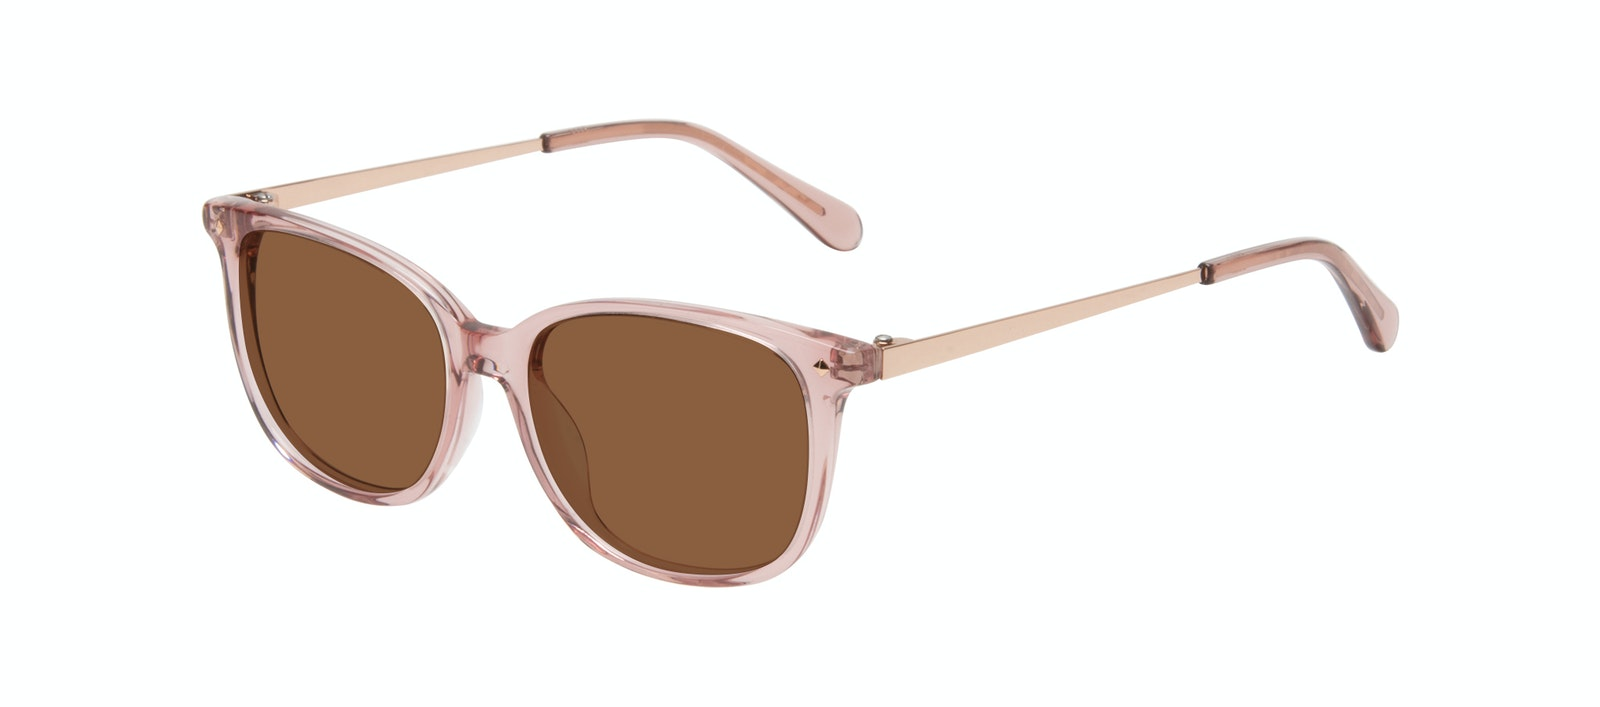 Affordable Fashion Glasses Square Sunglasses Women Refine Petite Rose Tilt